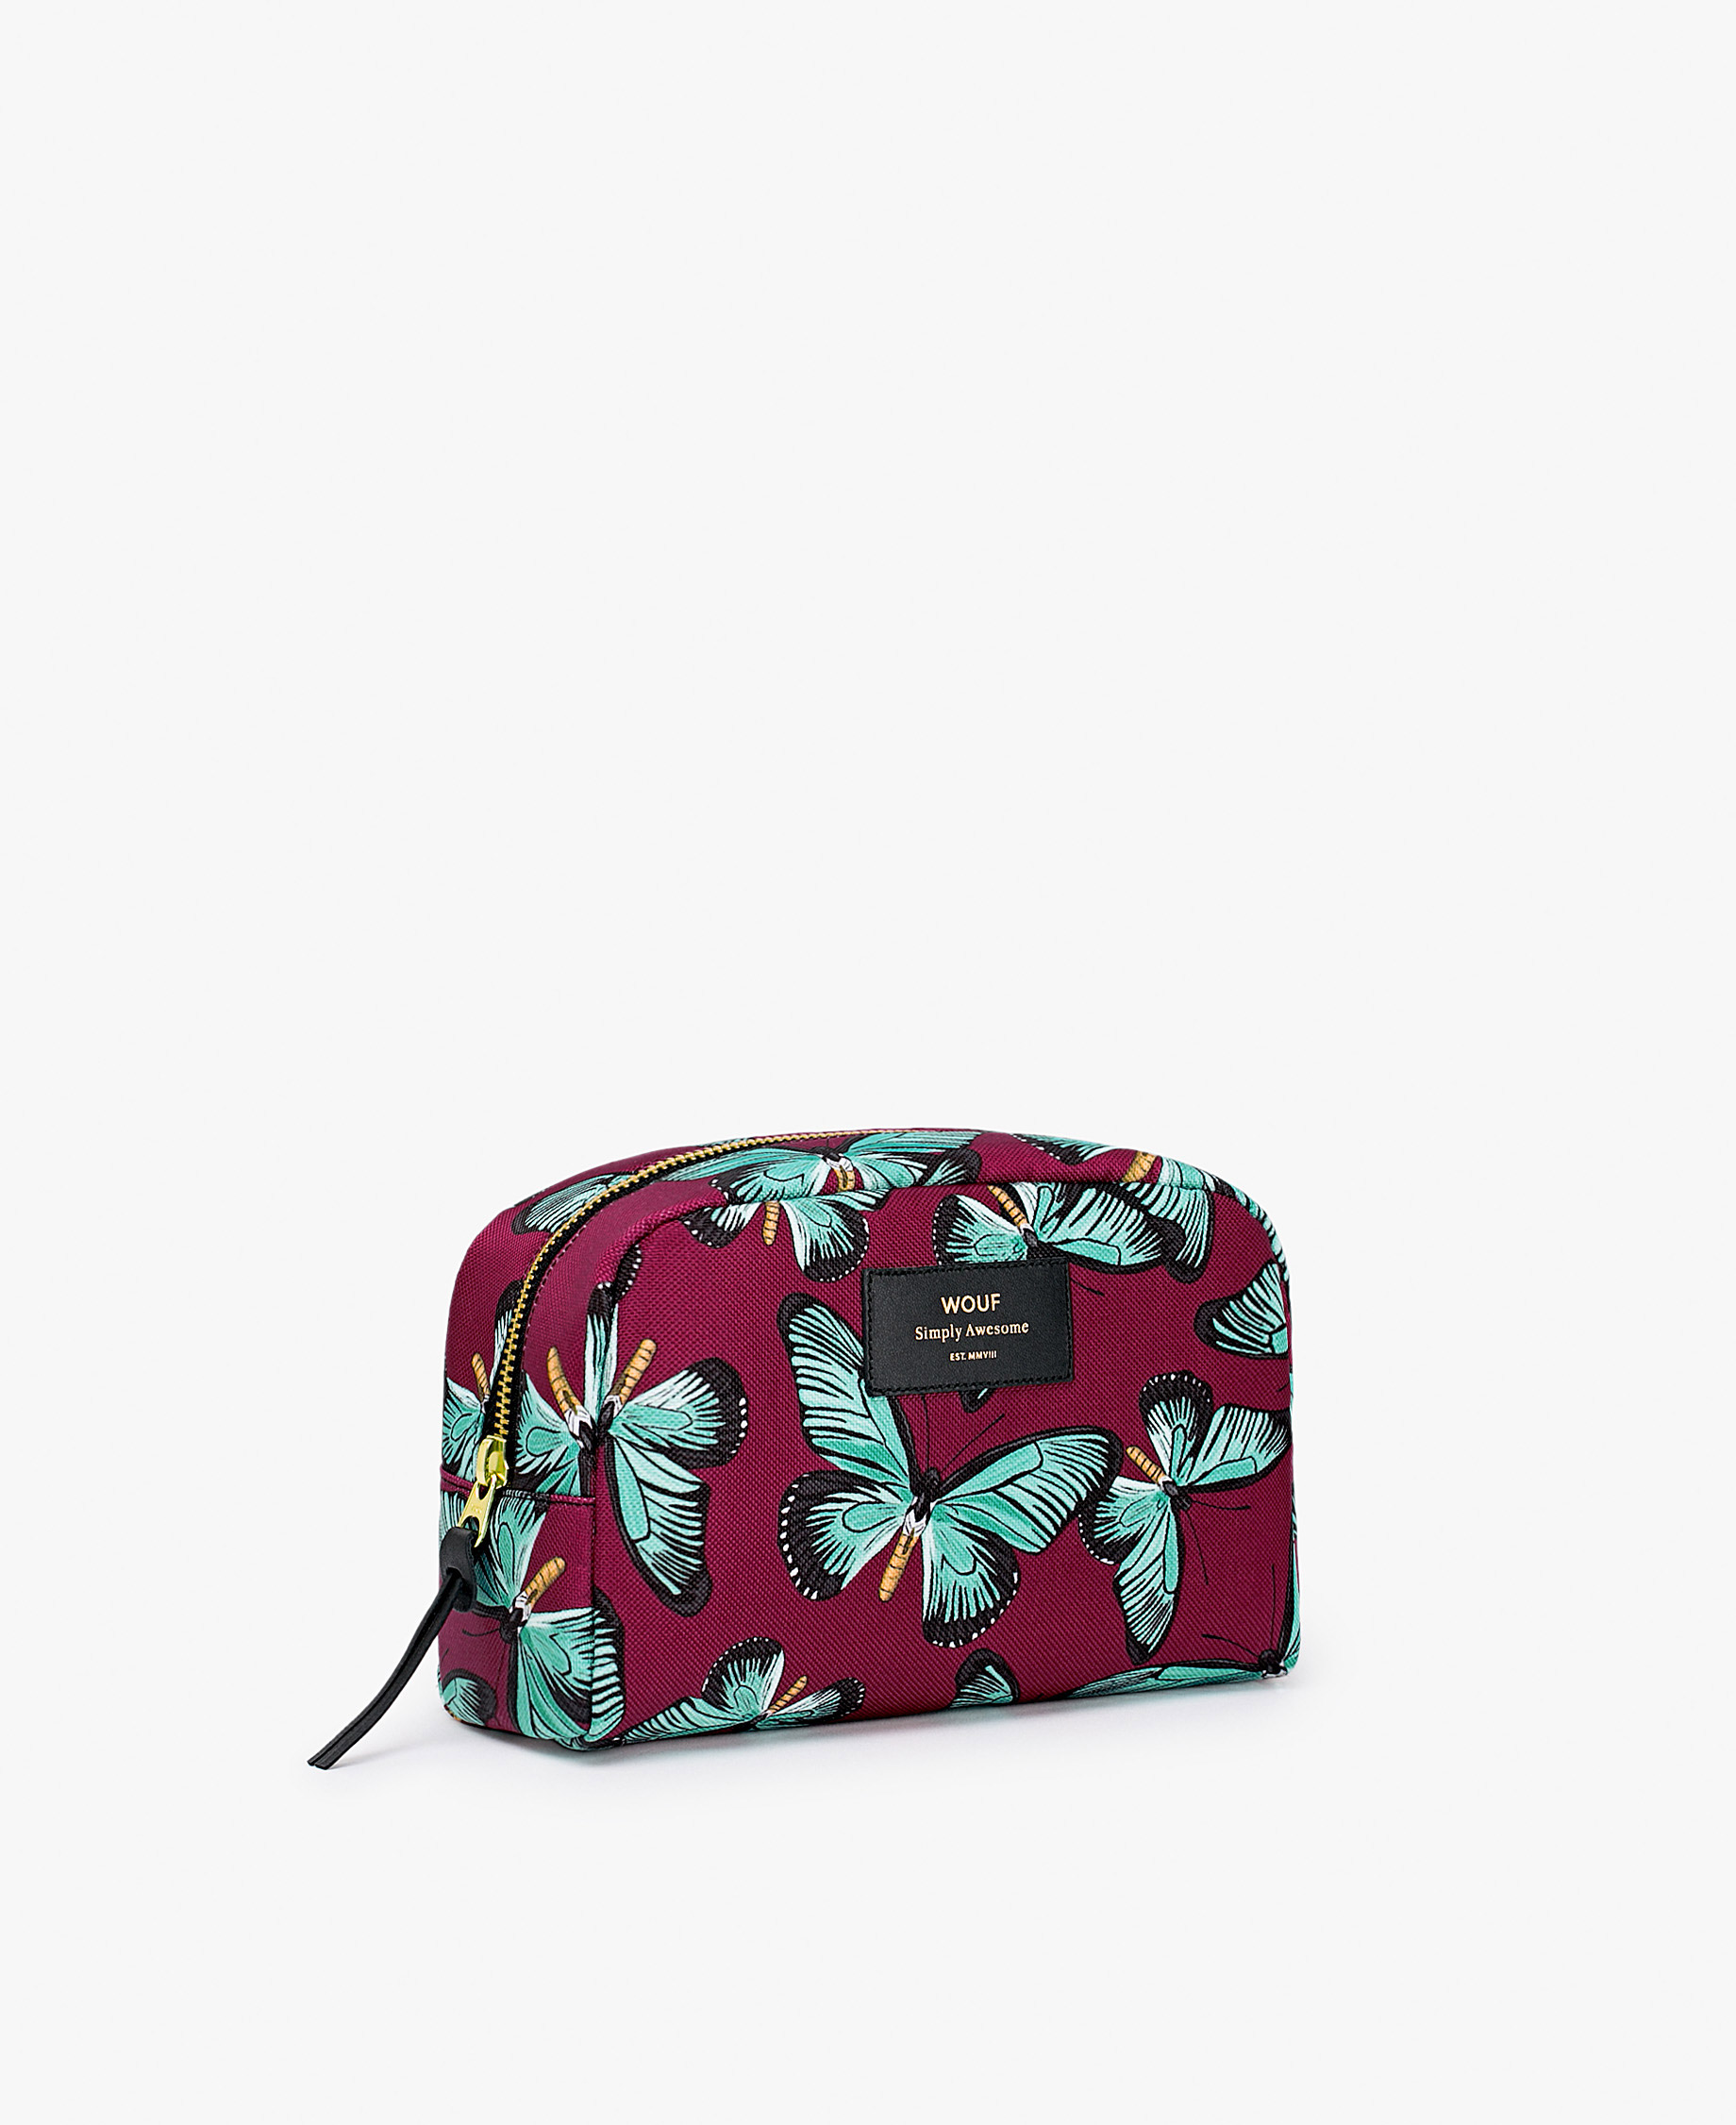 woman's toiletry bag with butterflies